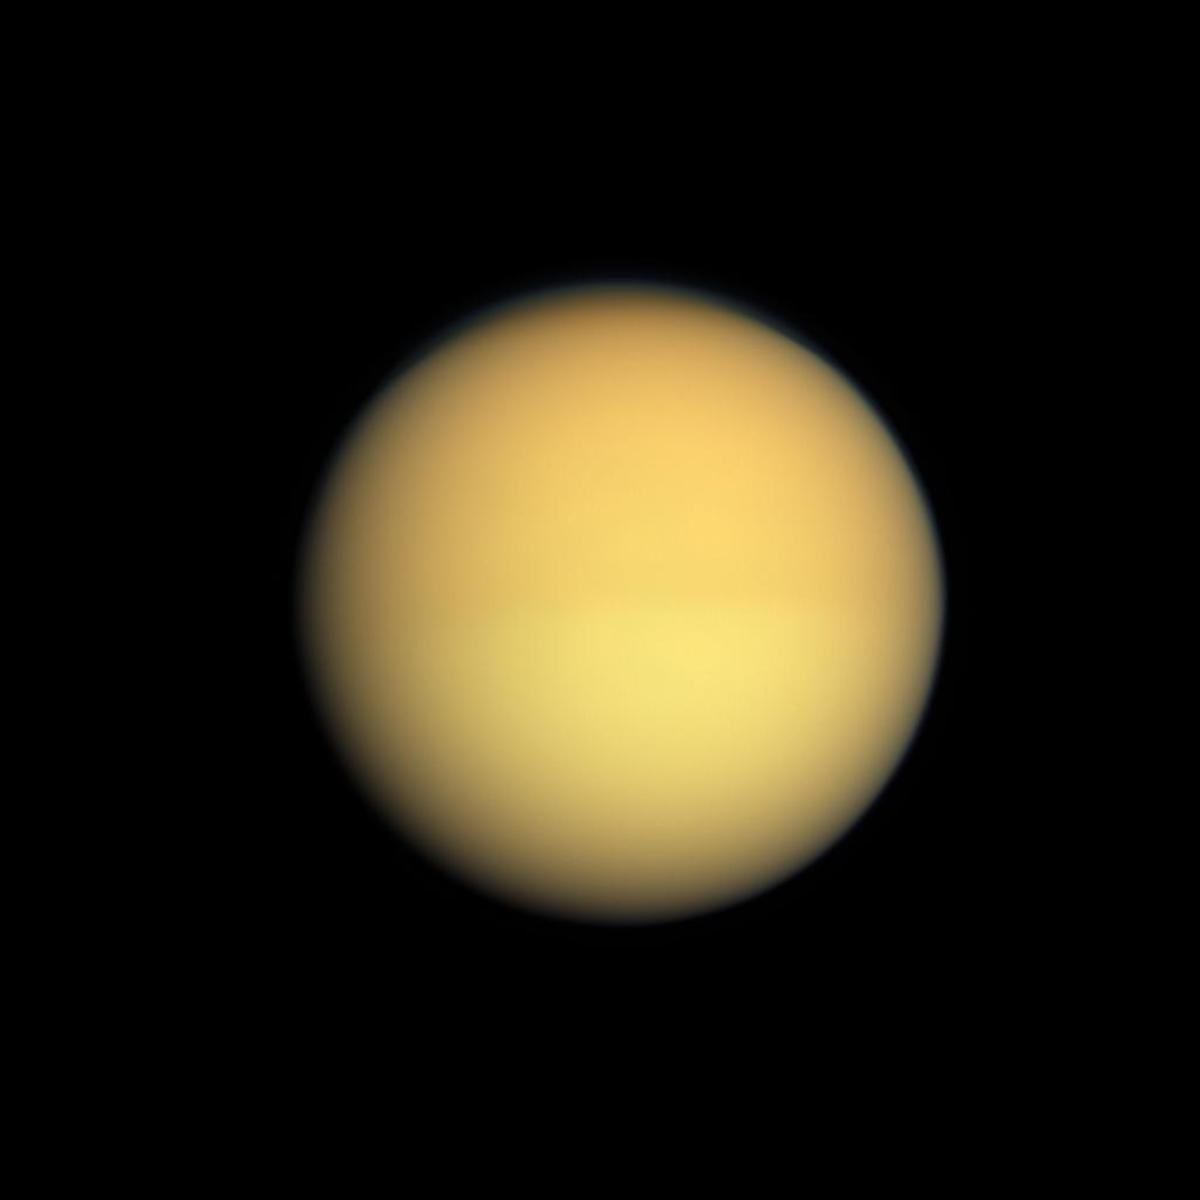 The strange moon Titan. The photo isn't blurred - the fuzziness is caused by the thick atmosphere which shrouds the surface of Titan and which is impenetrable to any attempts at imaging from space